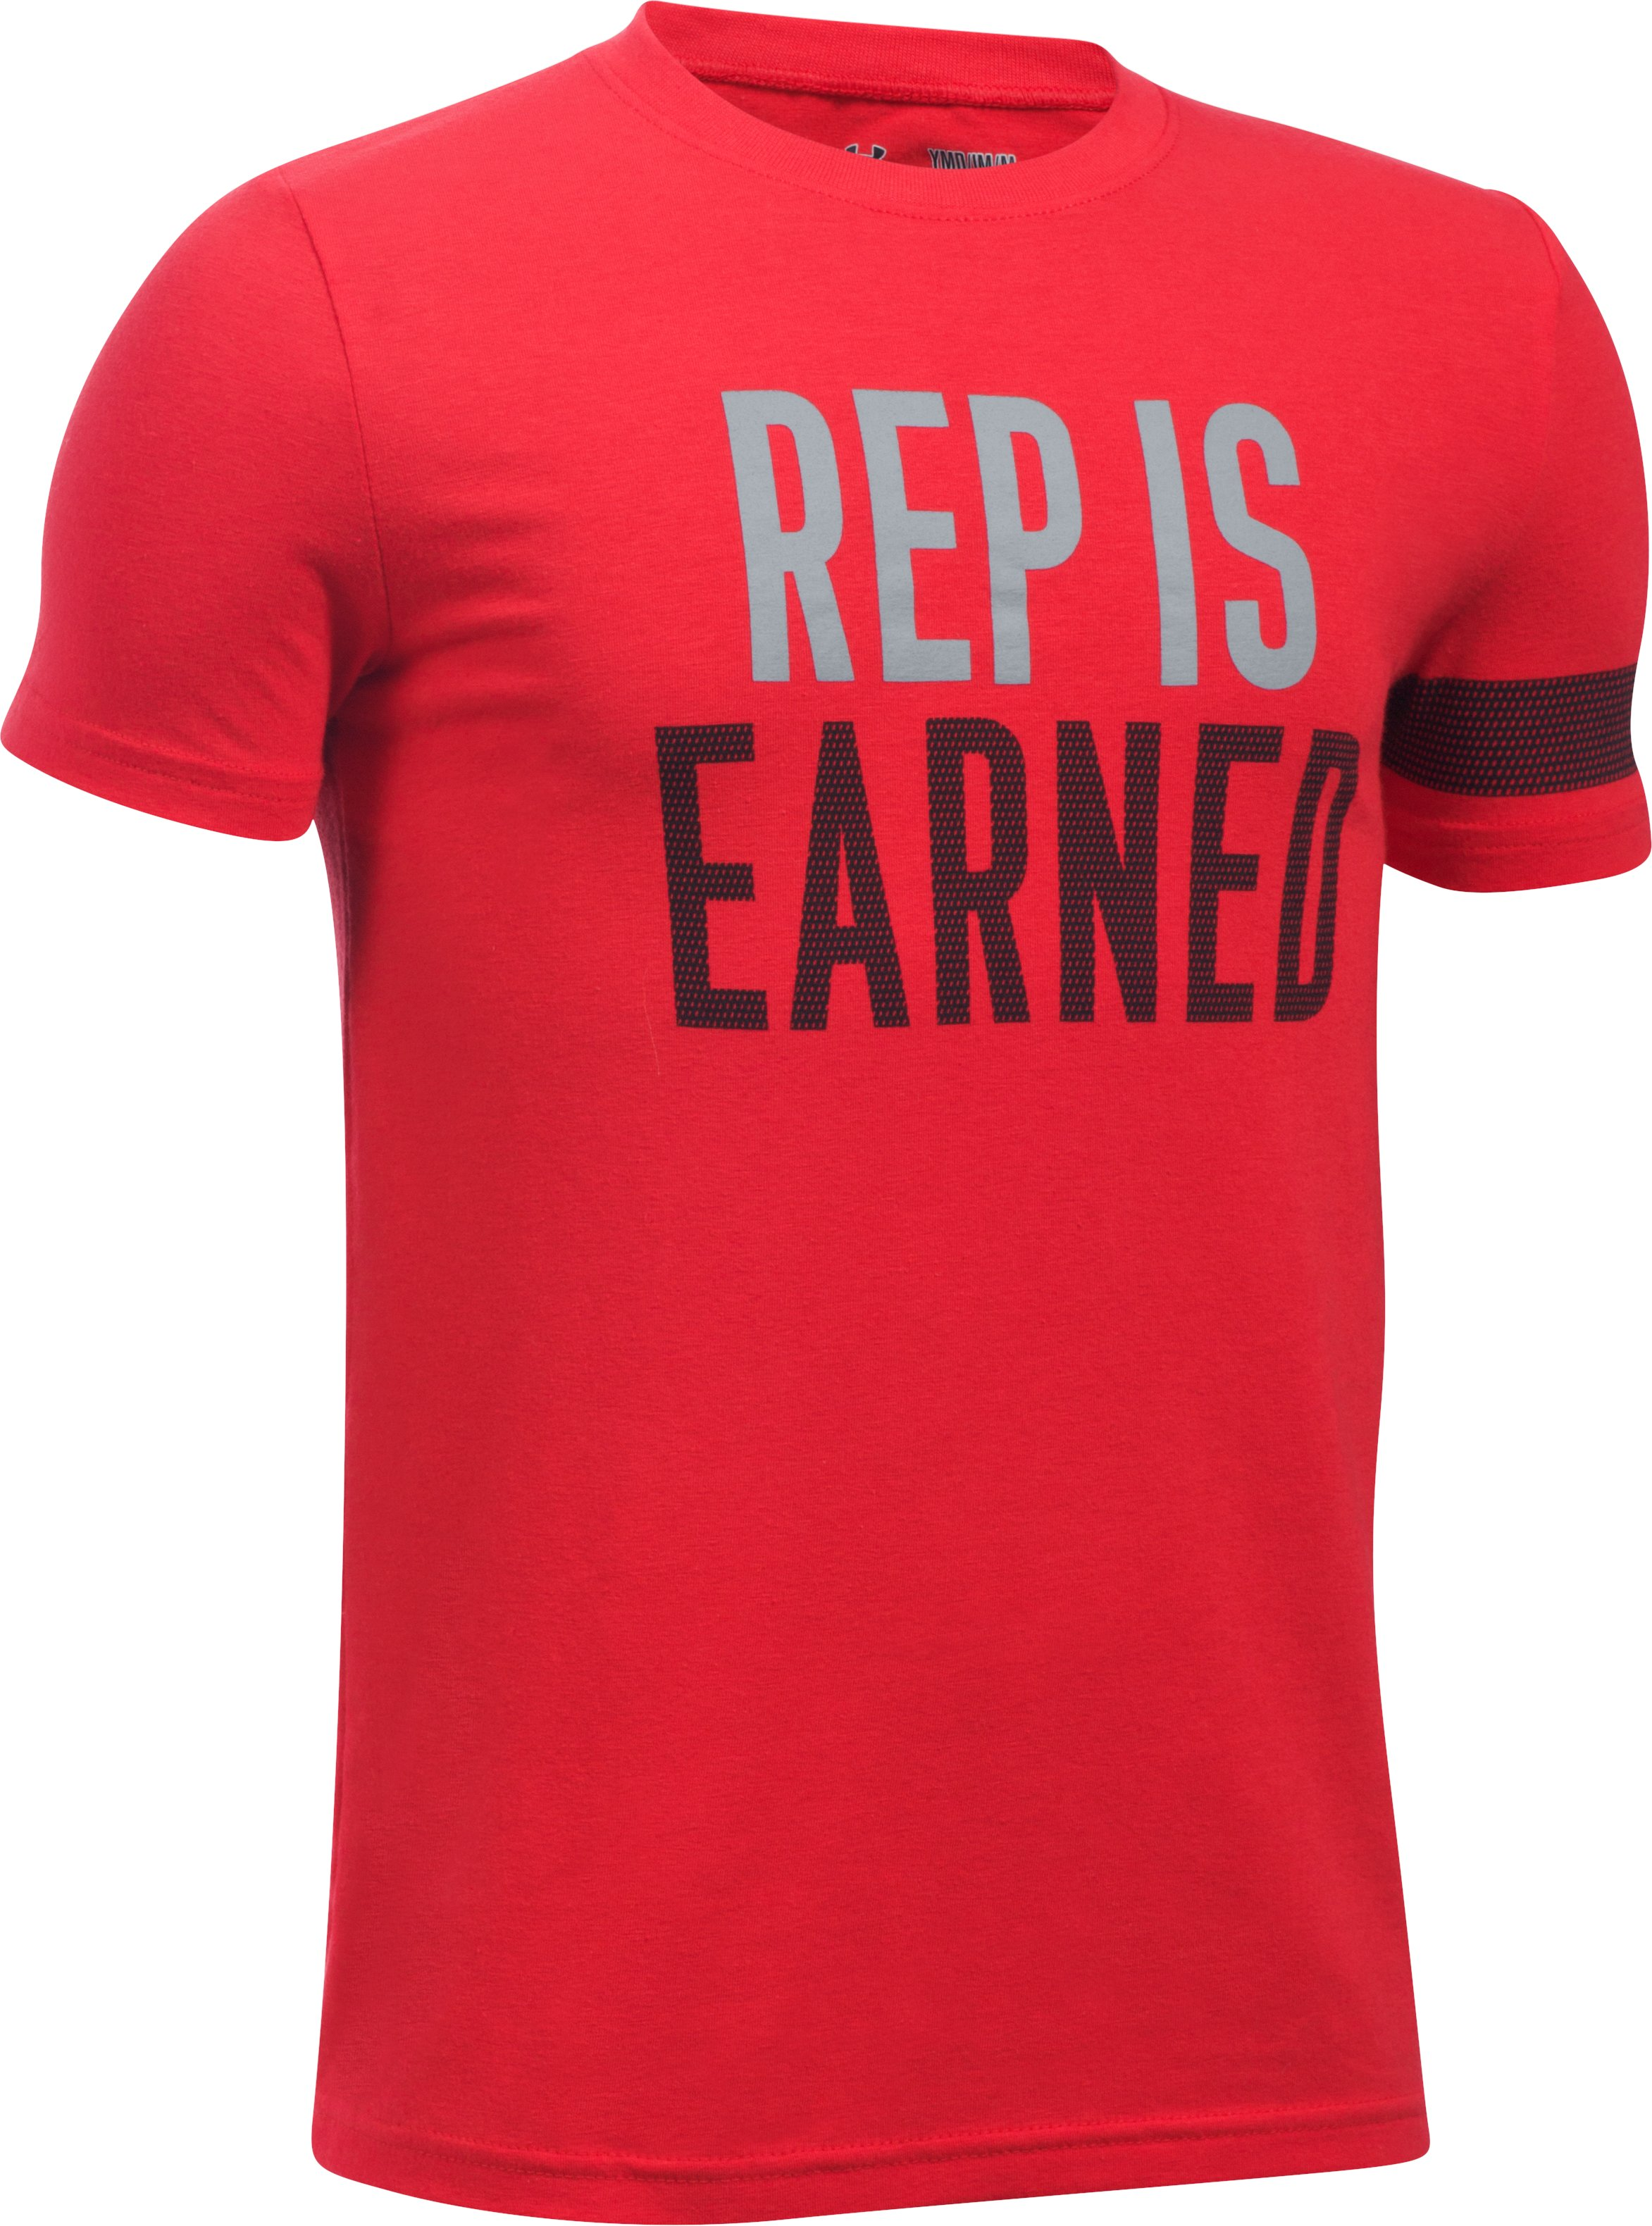 Boys' UA Rep Is Earned T-Shirt, Red,